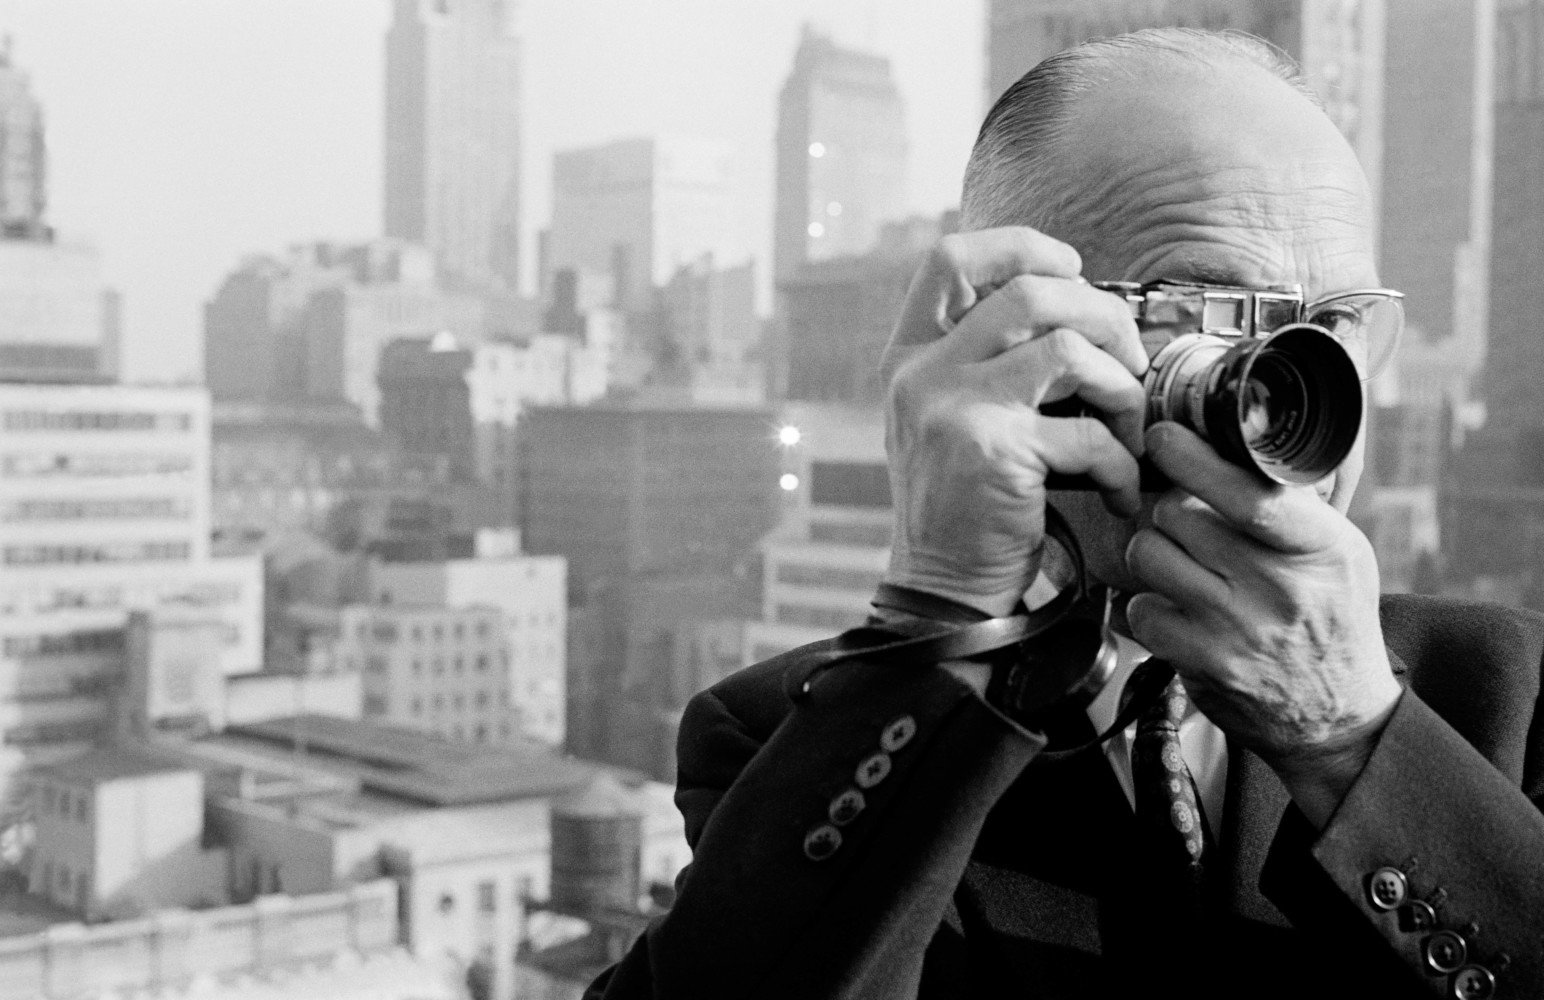 Portrait of the French photographer Henri Cartier Bresson a founder member of MAGNUM Photos on the roof of the Magnum office penthouse of Magnum Photos in Manhattan on West 57th Street.1961